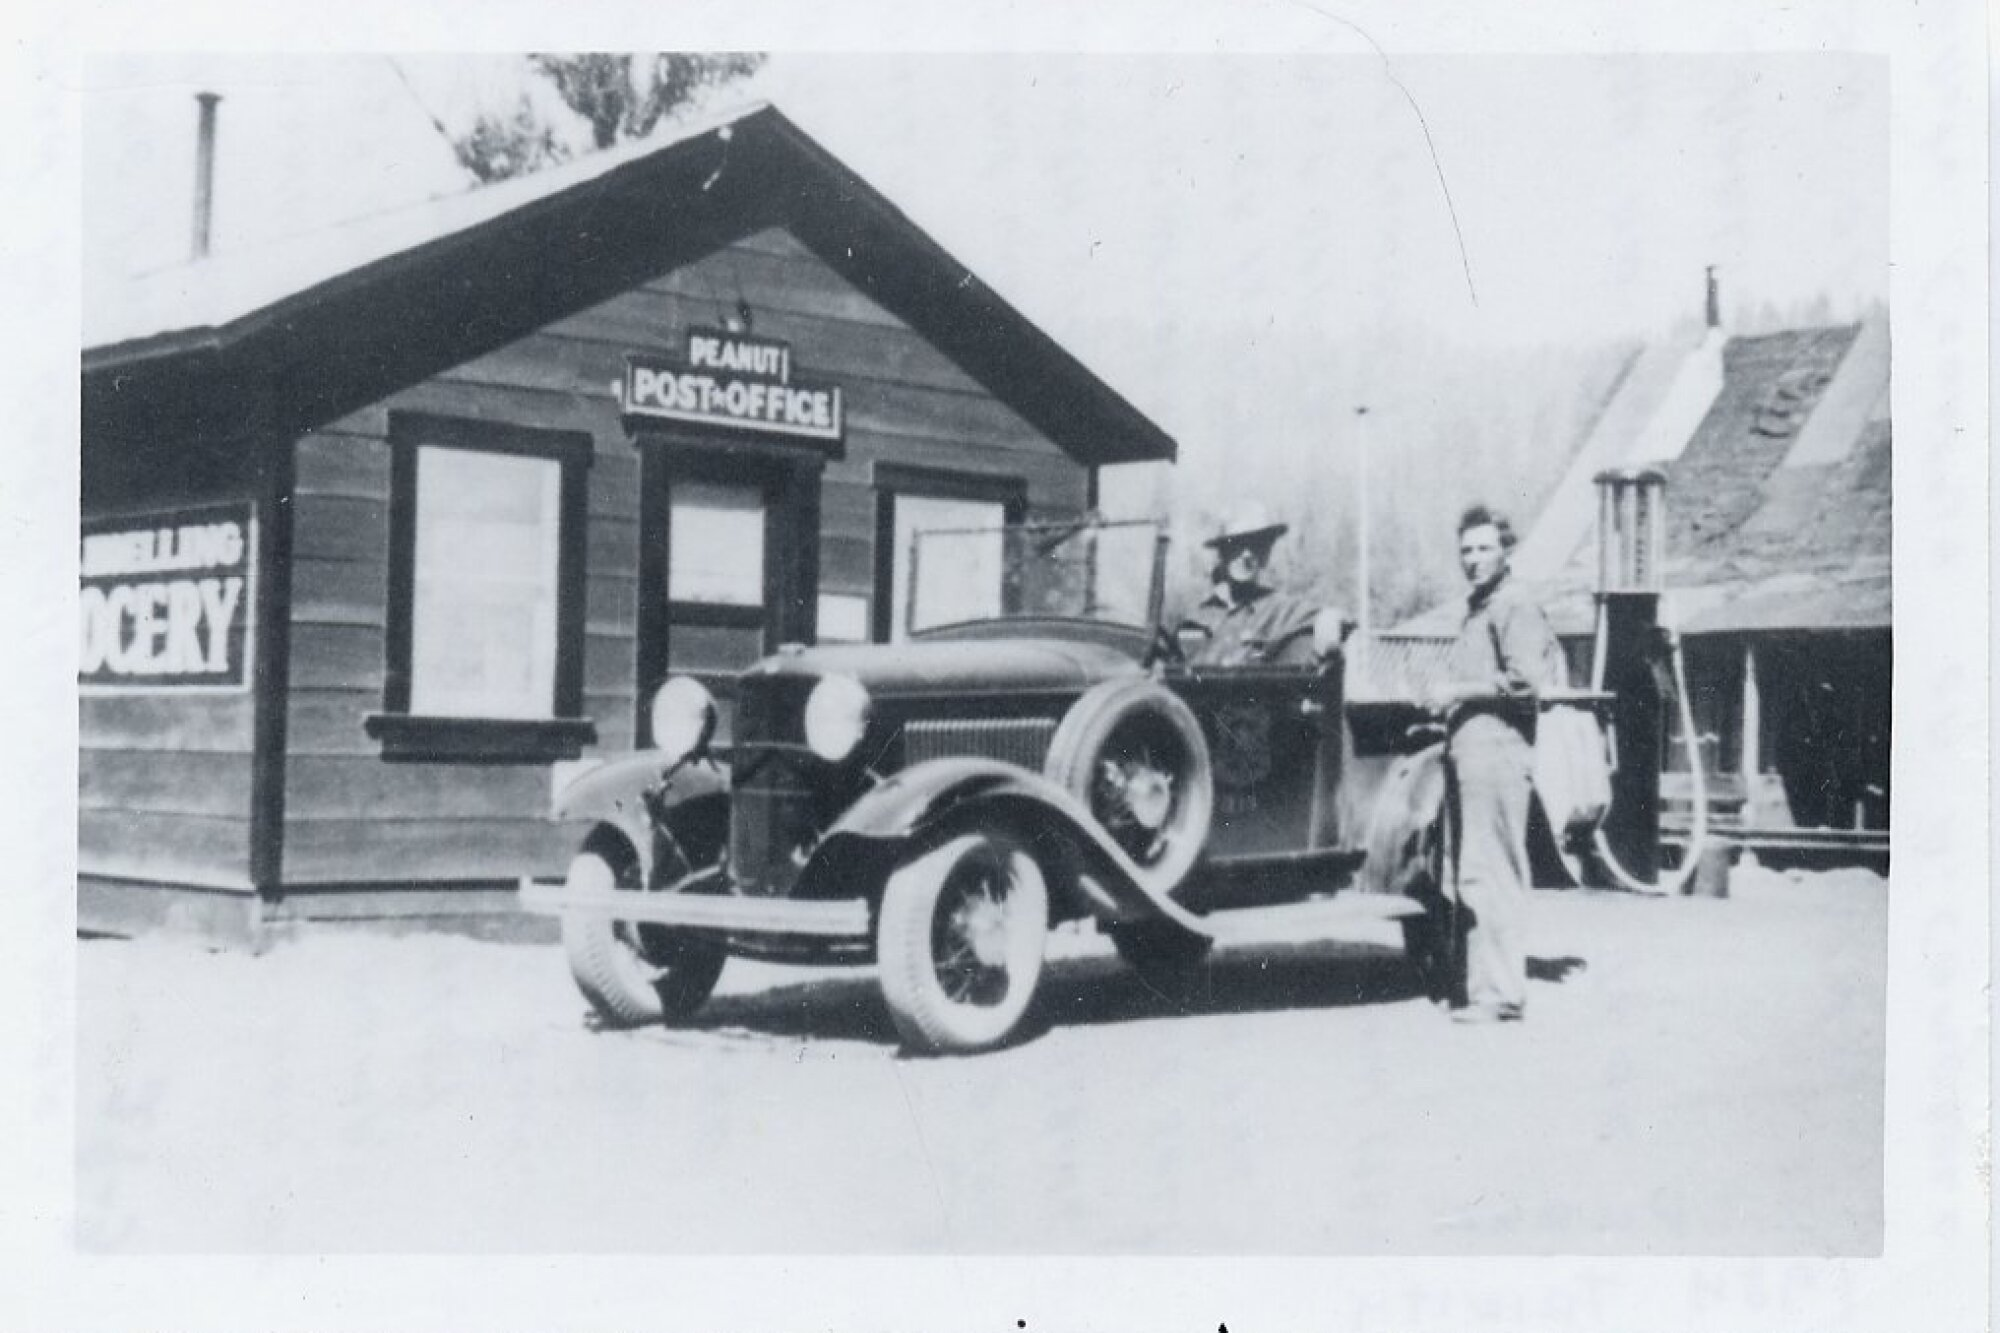 The Peanut, Calif., post office, pictured in the early 1900s